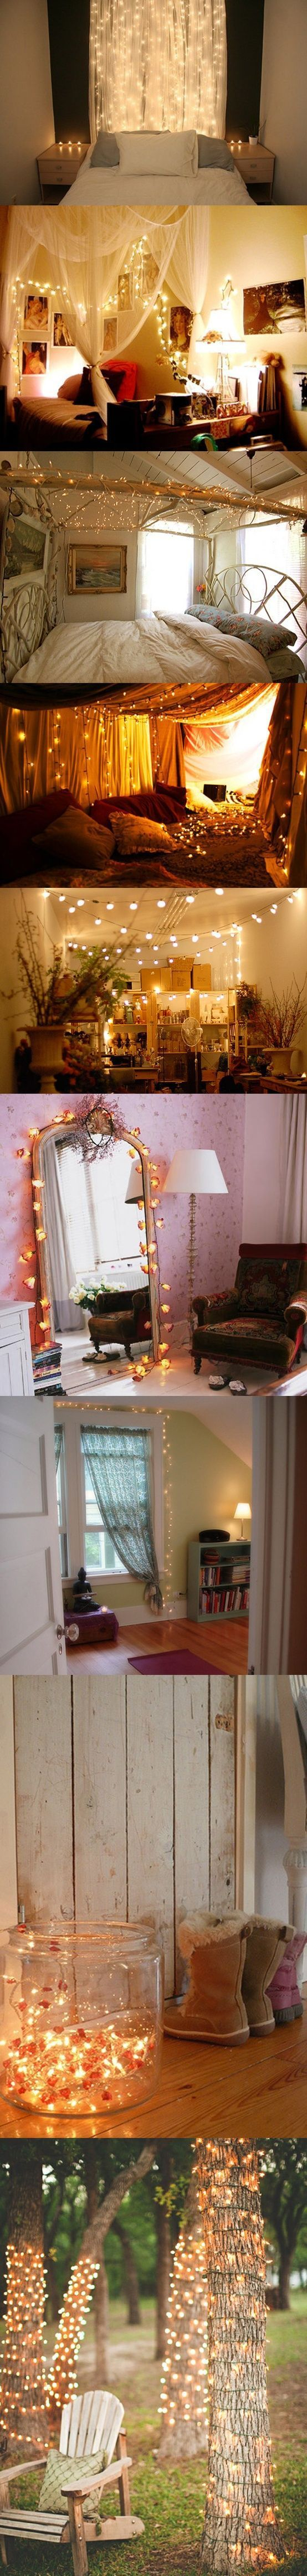 Bedroom christmas lights quotes - Find This Pin And More On Uni Room Inspo Decorating With Christmas Lights